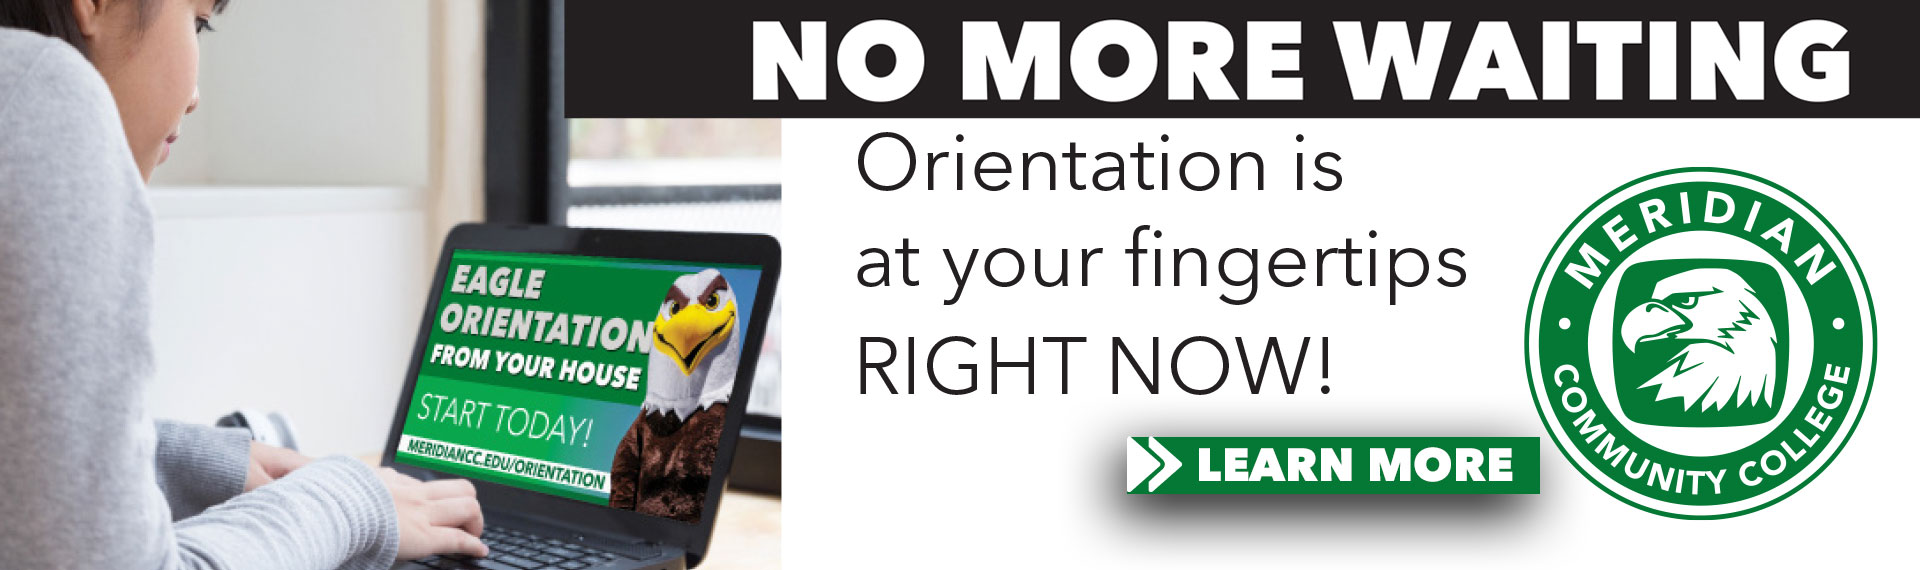 Orientation: No More Waiting